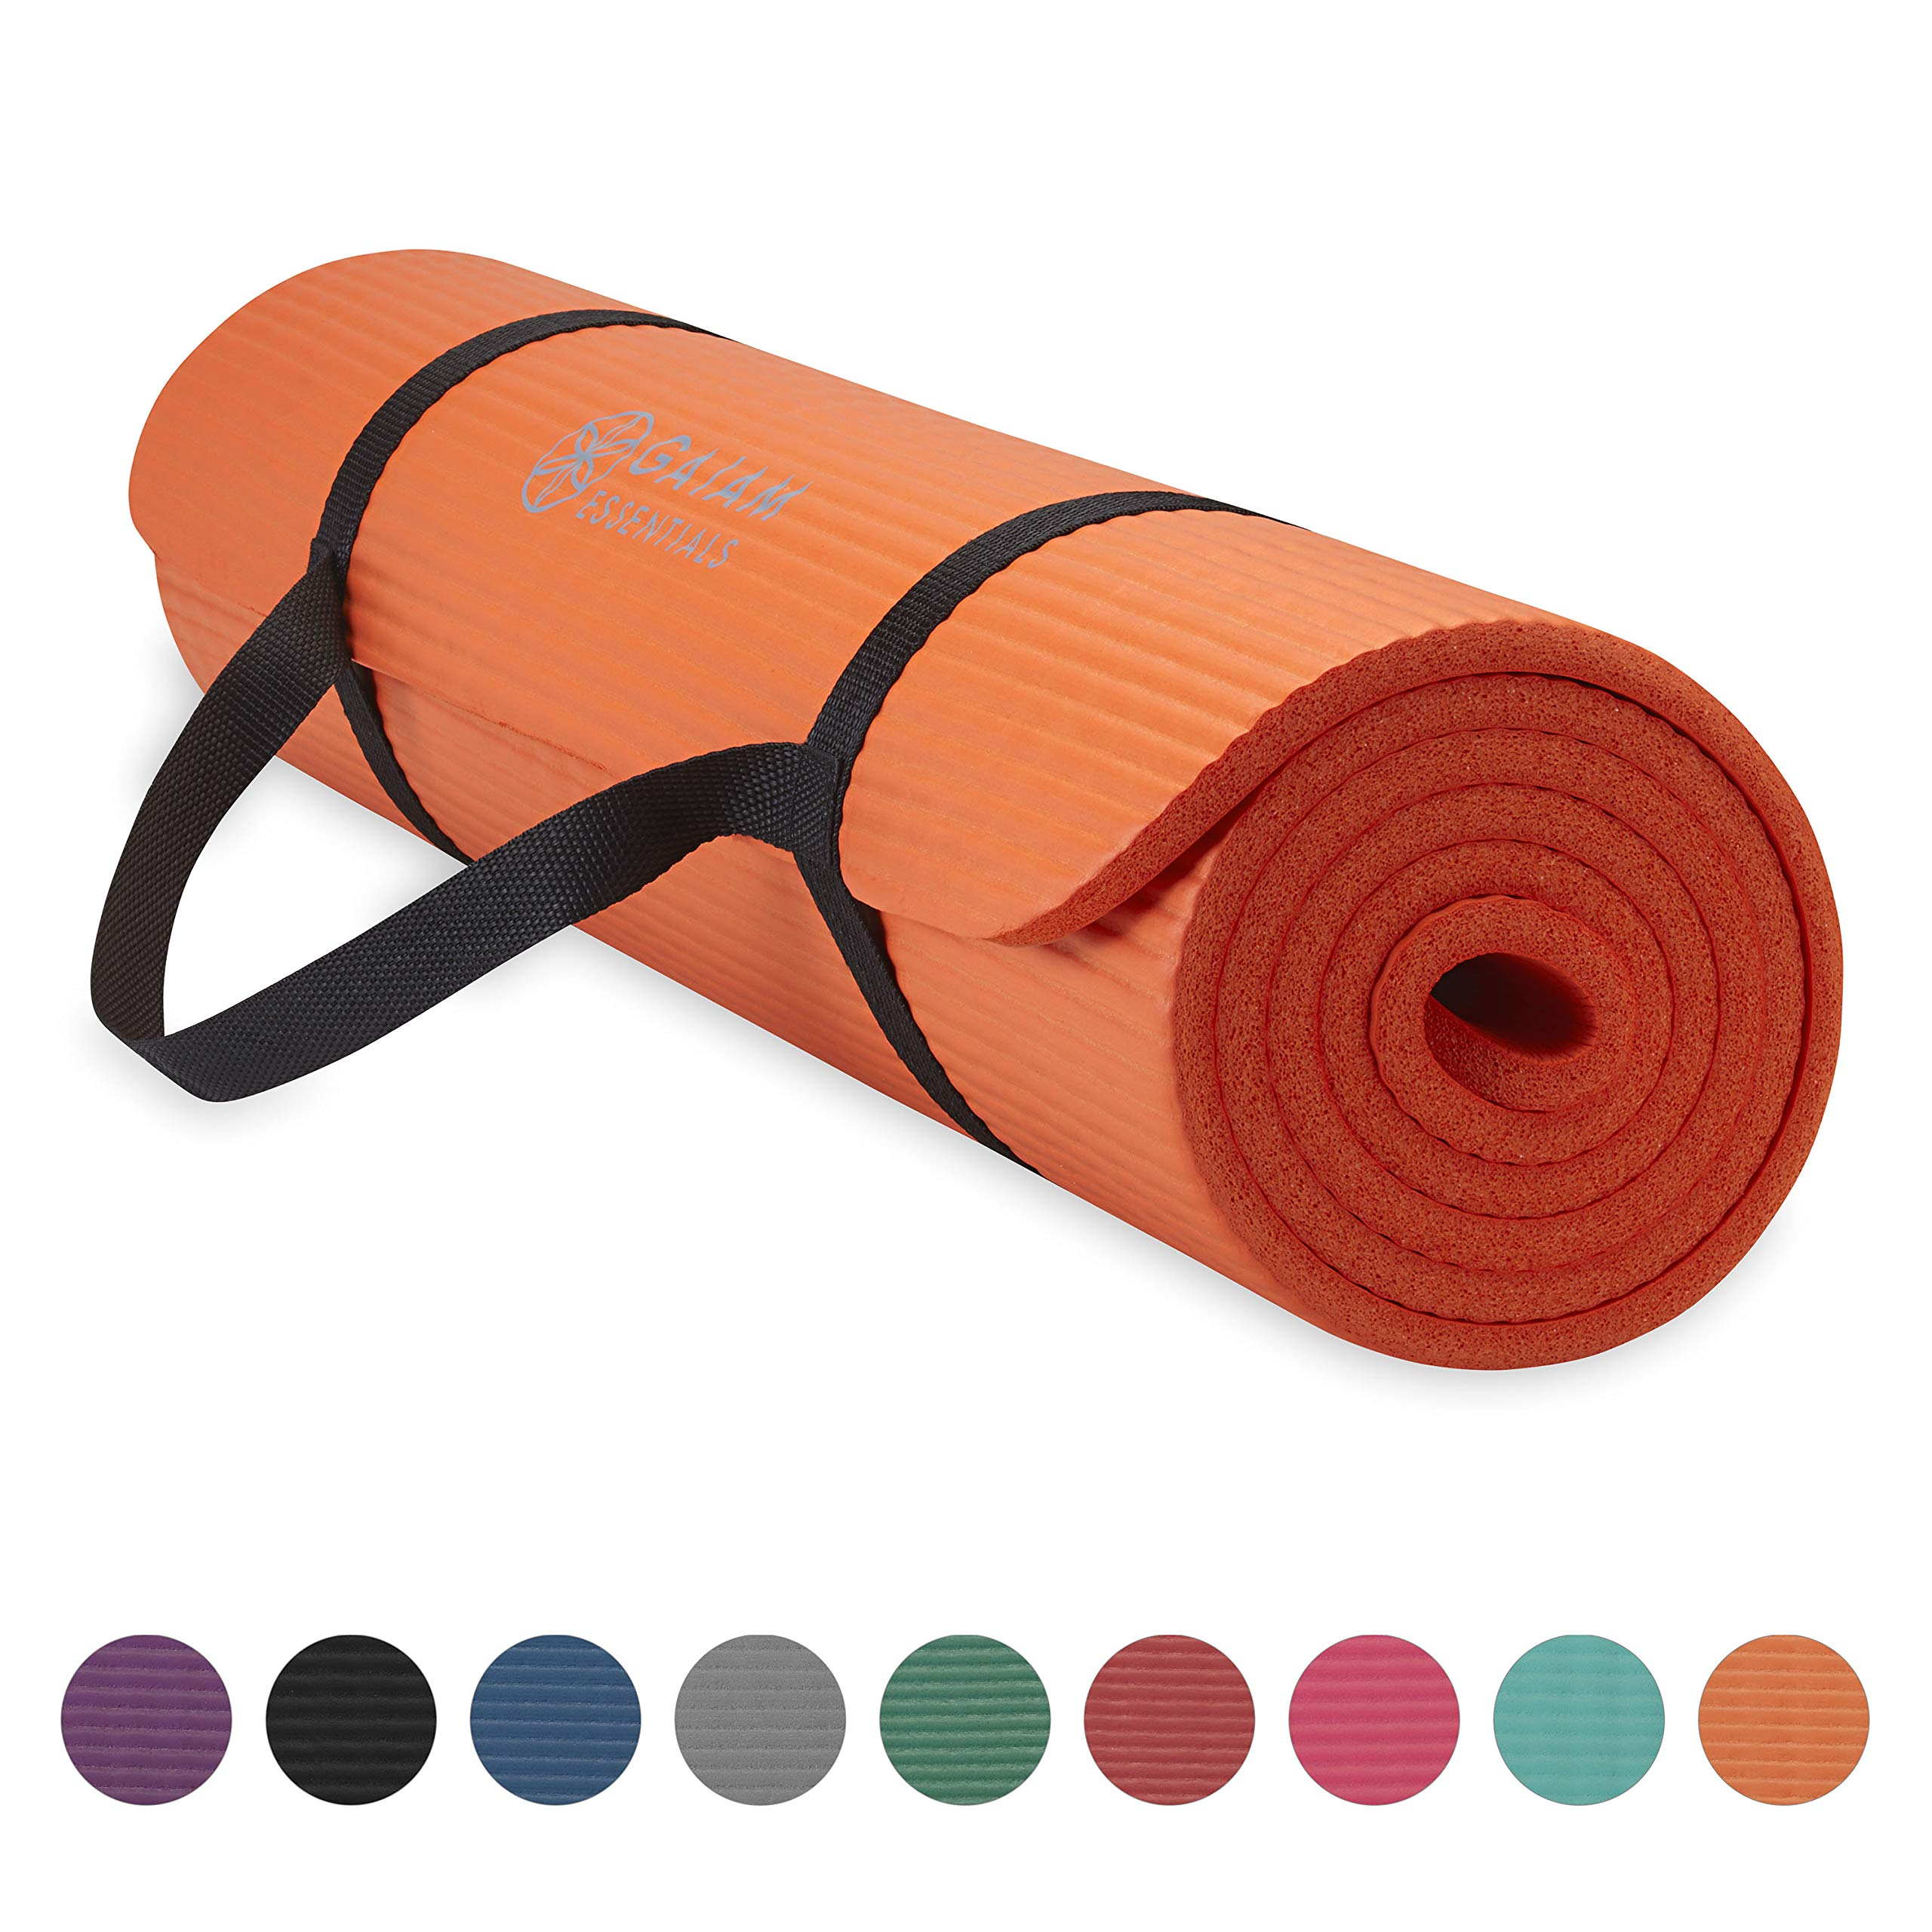 Gaiam Essentials Thick Yoga Mat Fitness & Exercise Mat with Easy-Cinch Yoga Mat Carrier Strap, Orange, 72''L x 24''W x 2/5 Inch Thick